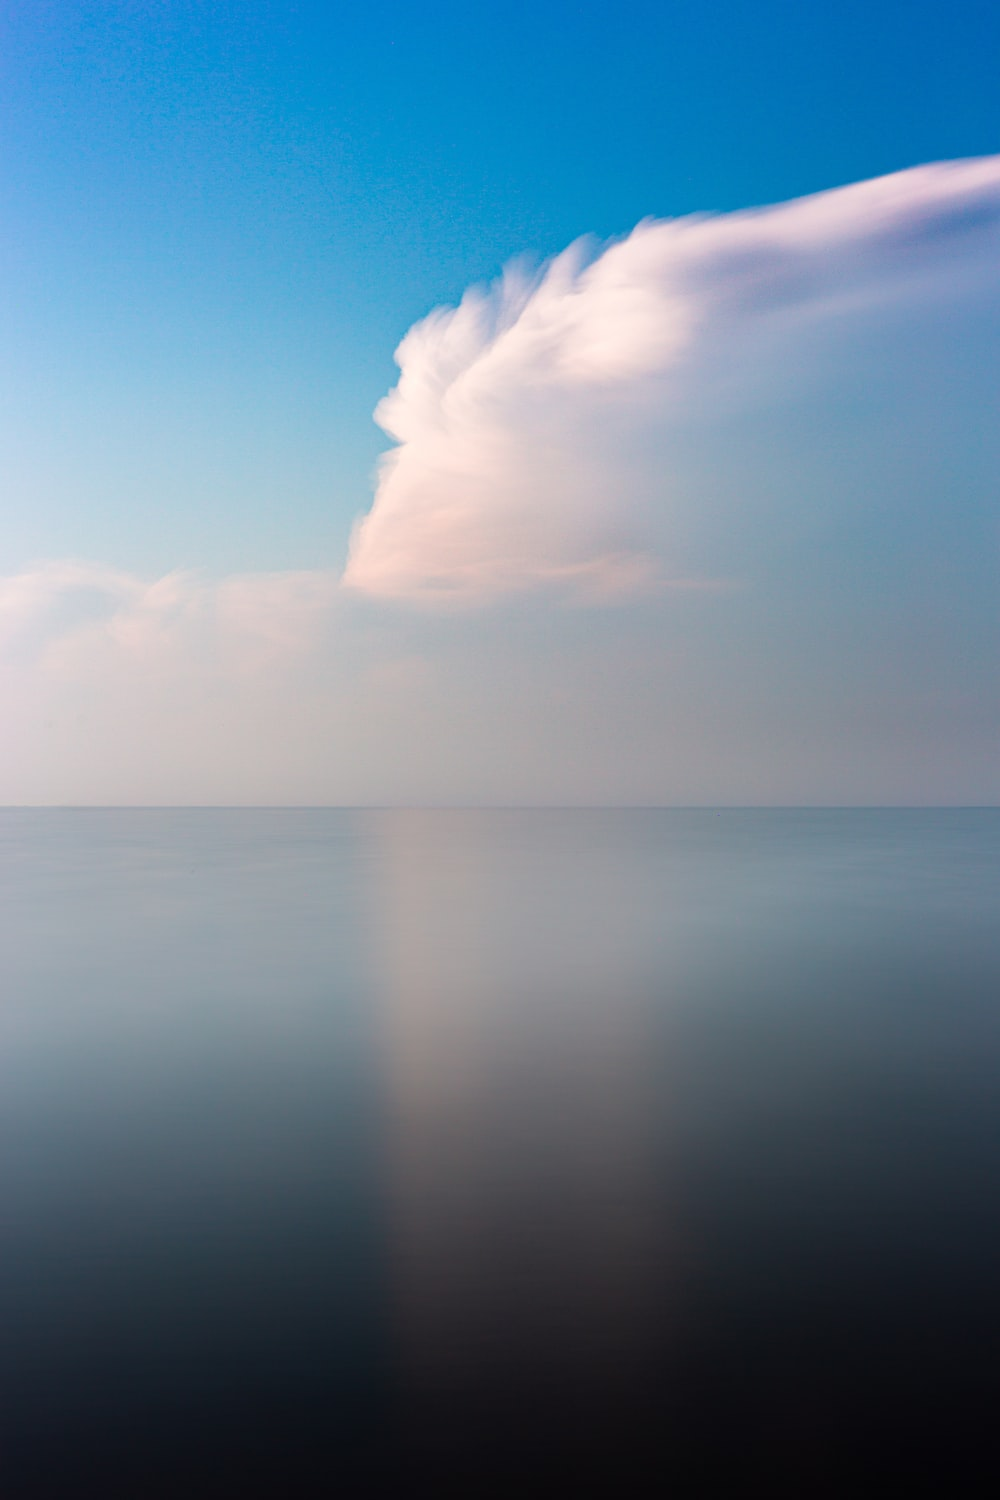 calm sea under clear blue sky and white clouds